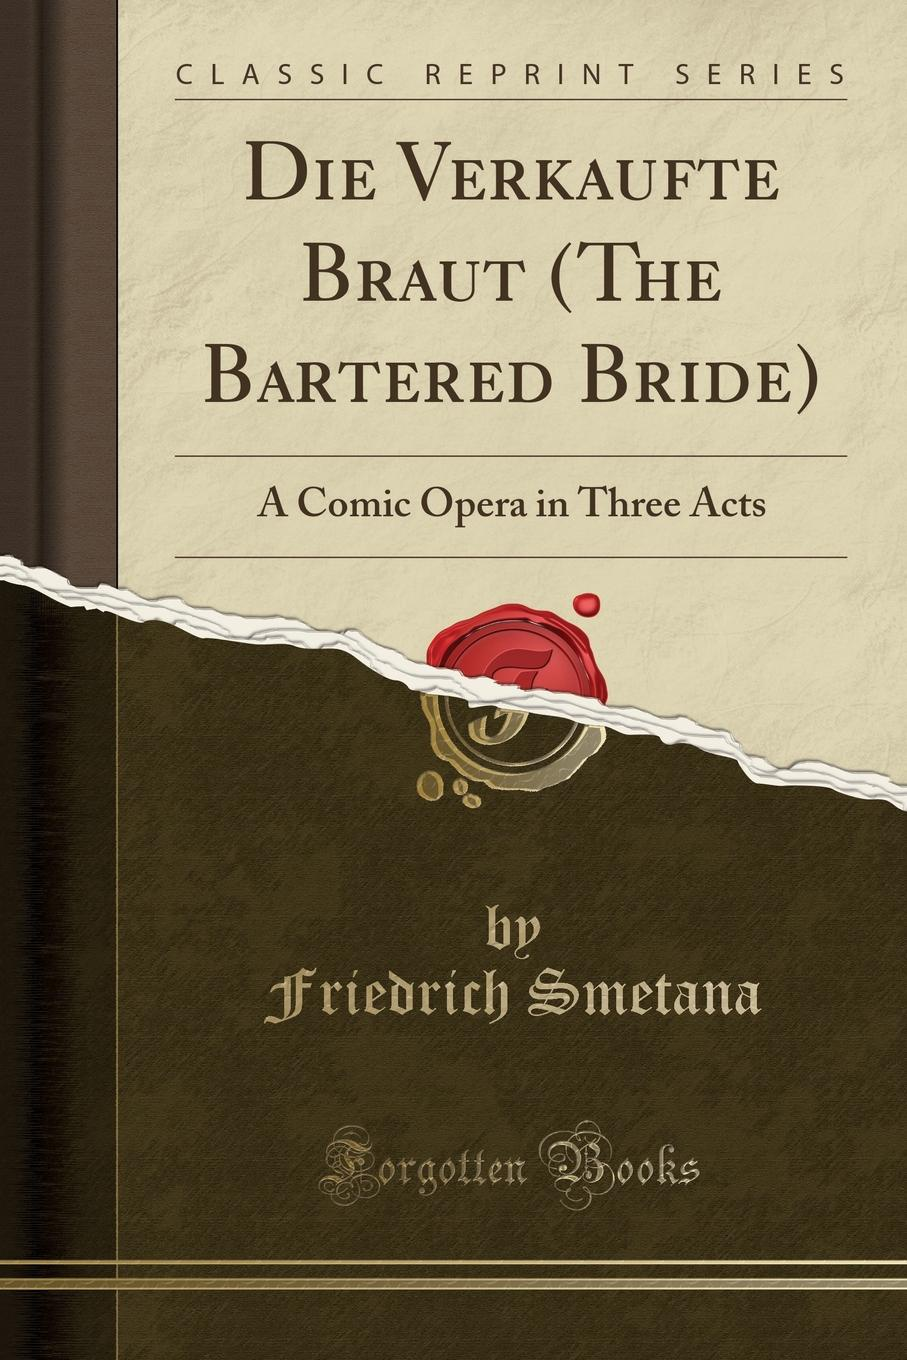 Friedrich Smetana Die Verkaufte Braut (The Bartered Bride). A Comic Opera in Three Acts (Classic Reprint) cheryl reavis the bartered bride